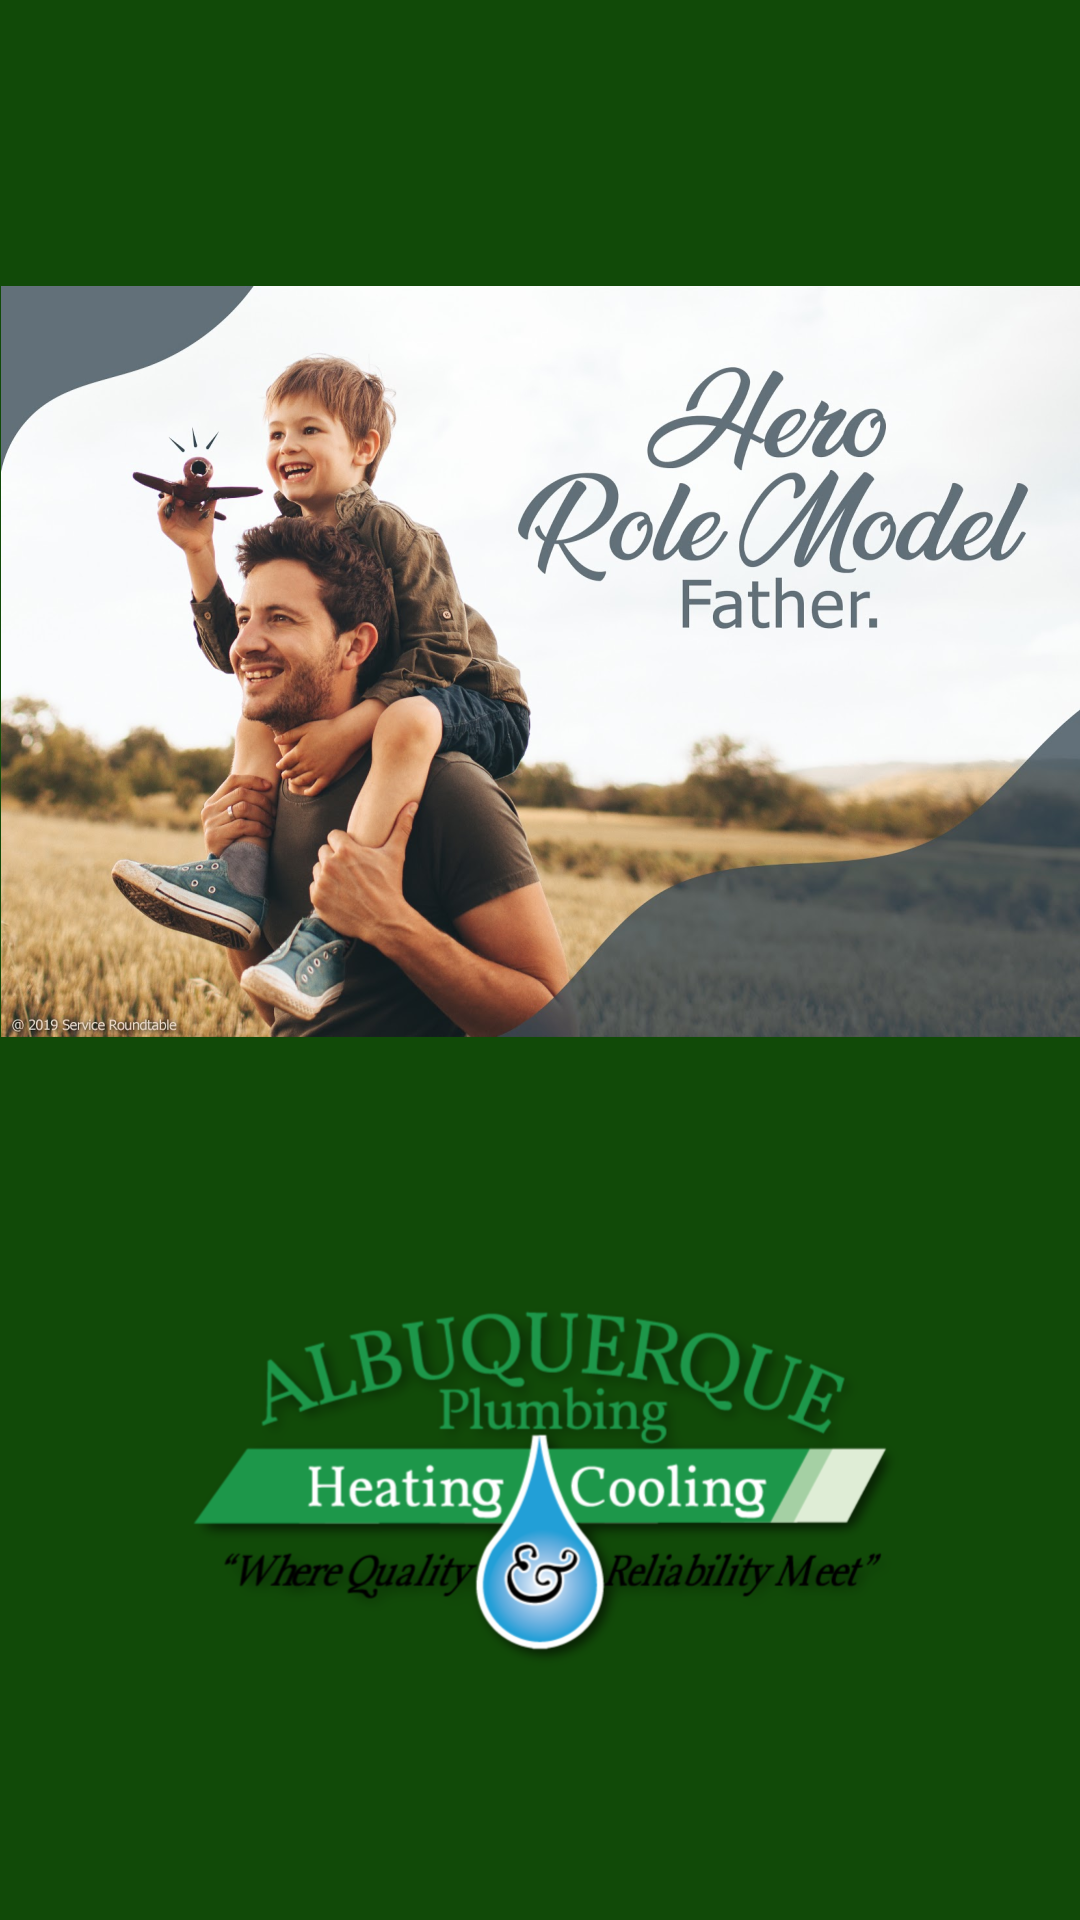 We Love All Of The Dad S We Have On Our Team Thank You For All Of Your Hard Work Fathersday2019 Abqplumb Abqplumbfamily Ourda Happy Fathers Day Happy Father